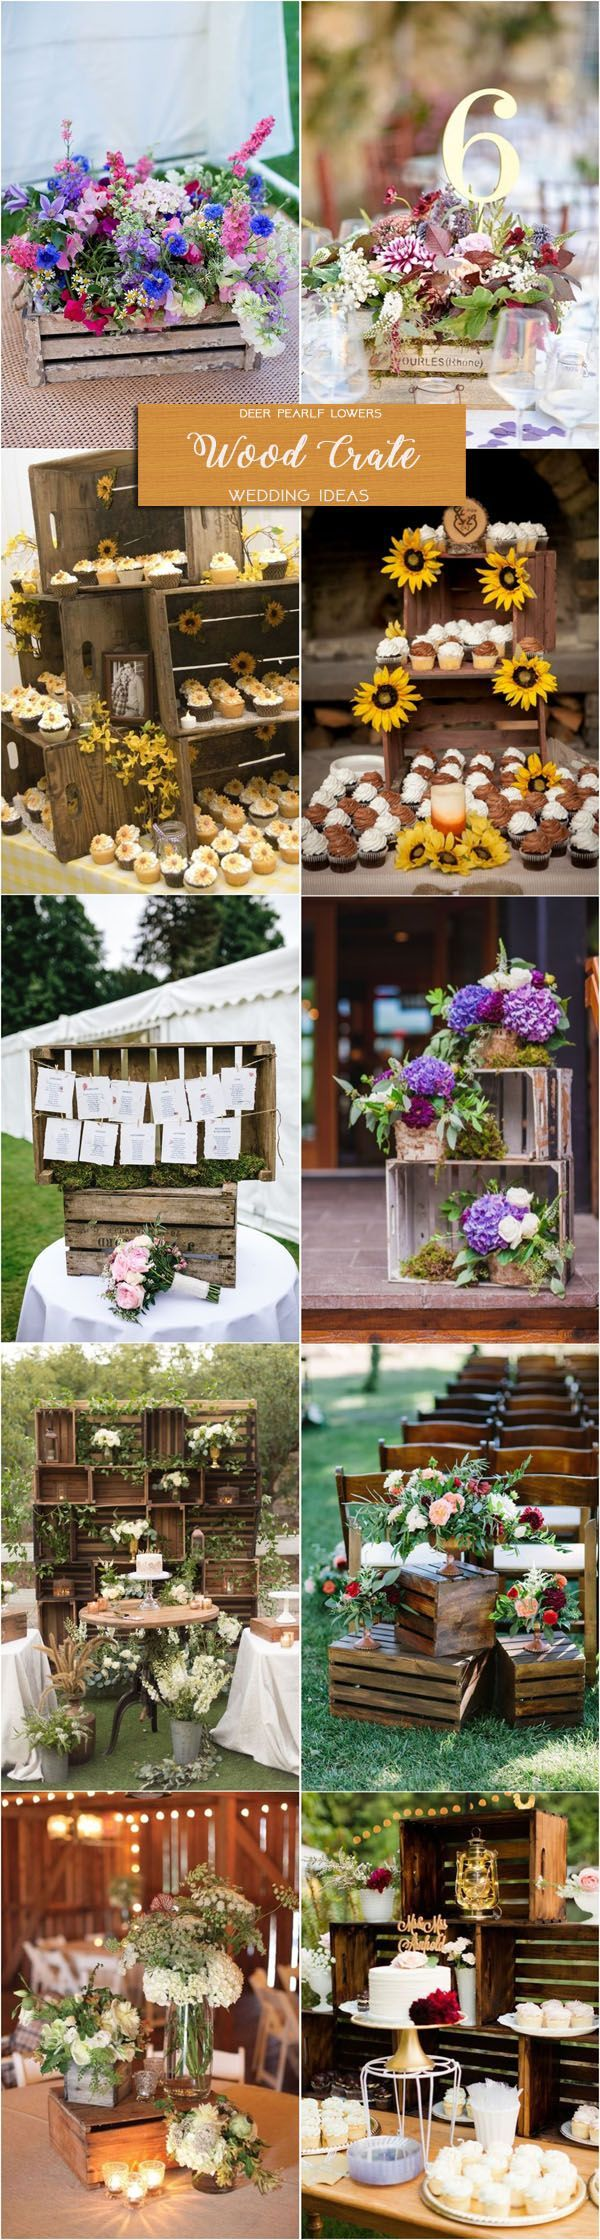 Rustic country wedding ideas - wooden crate wedding centerpieces & decor / http://www.deerpearlflowers.com/rustic-wedding-themes-ideas/2/